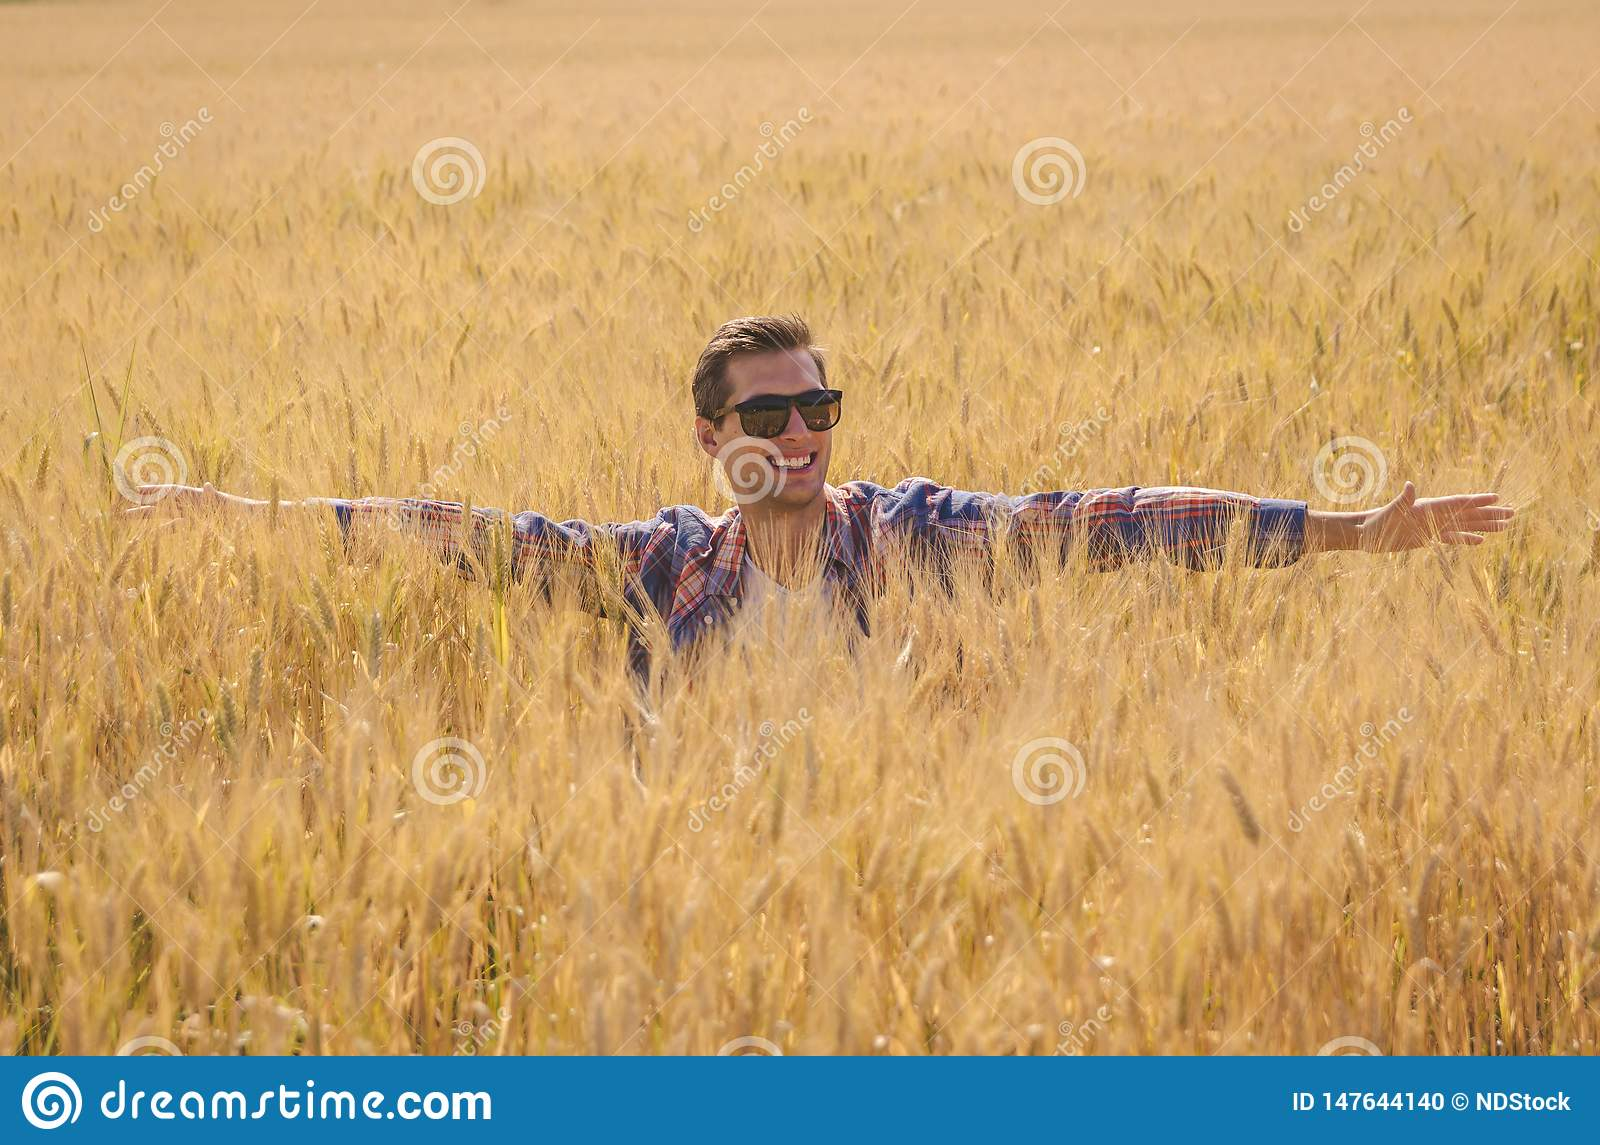 Man posing in a Wheat filed